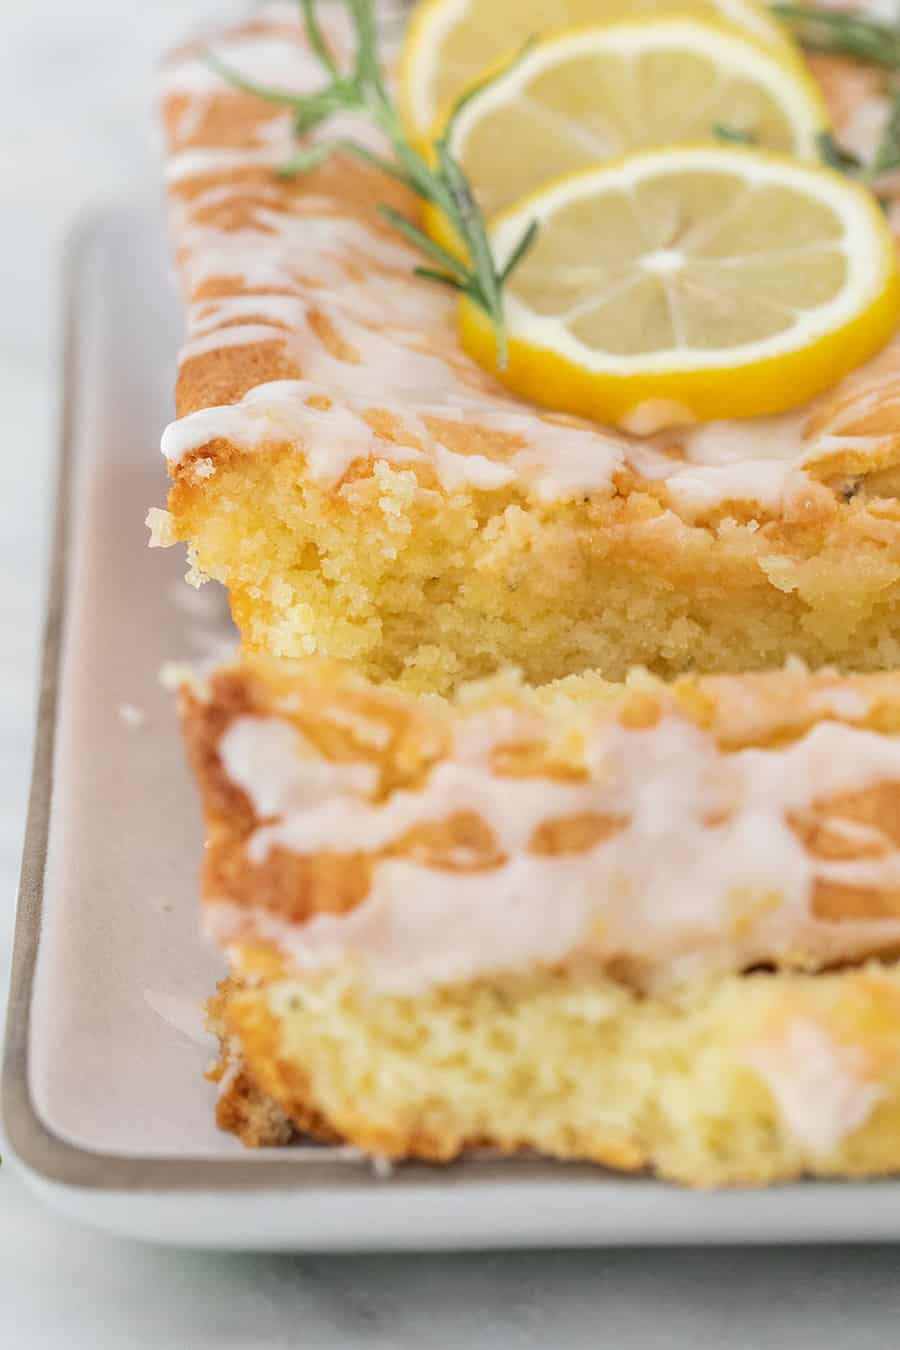 Buttery, moist lemon loaf cake cut with glaze poured over the top.